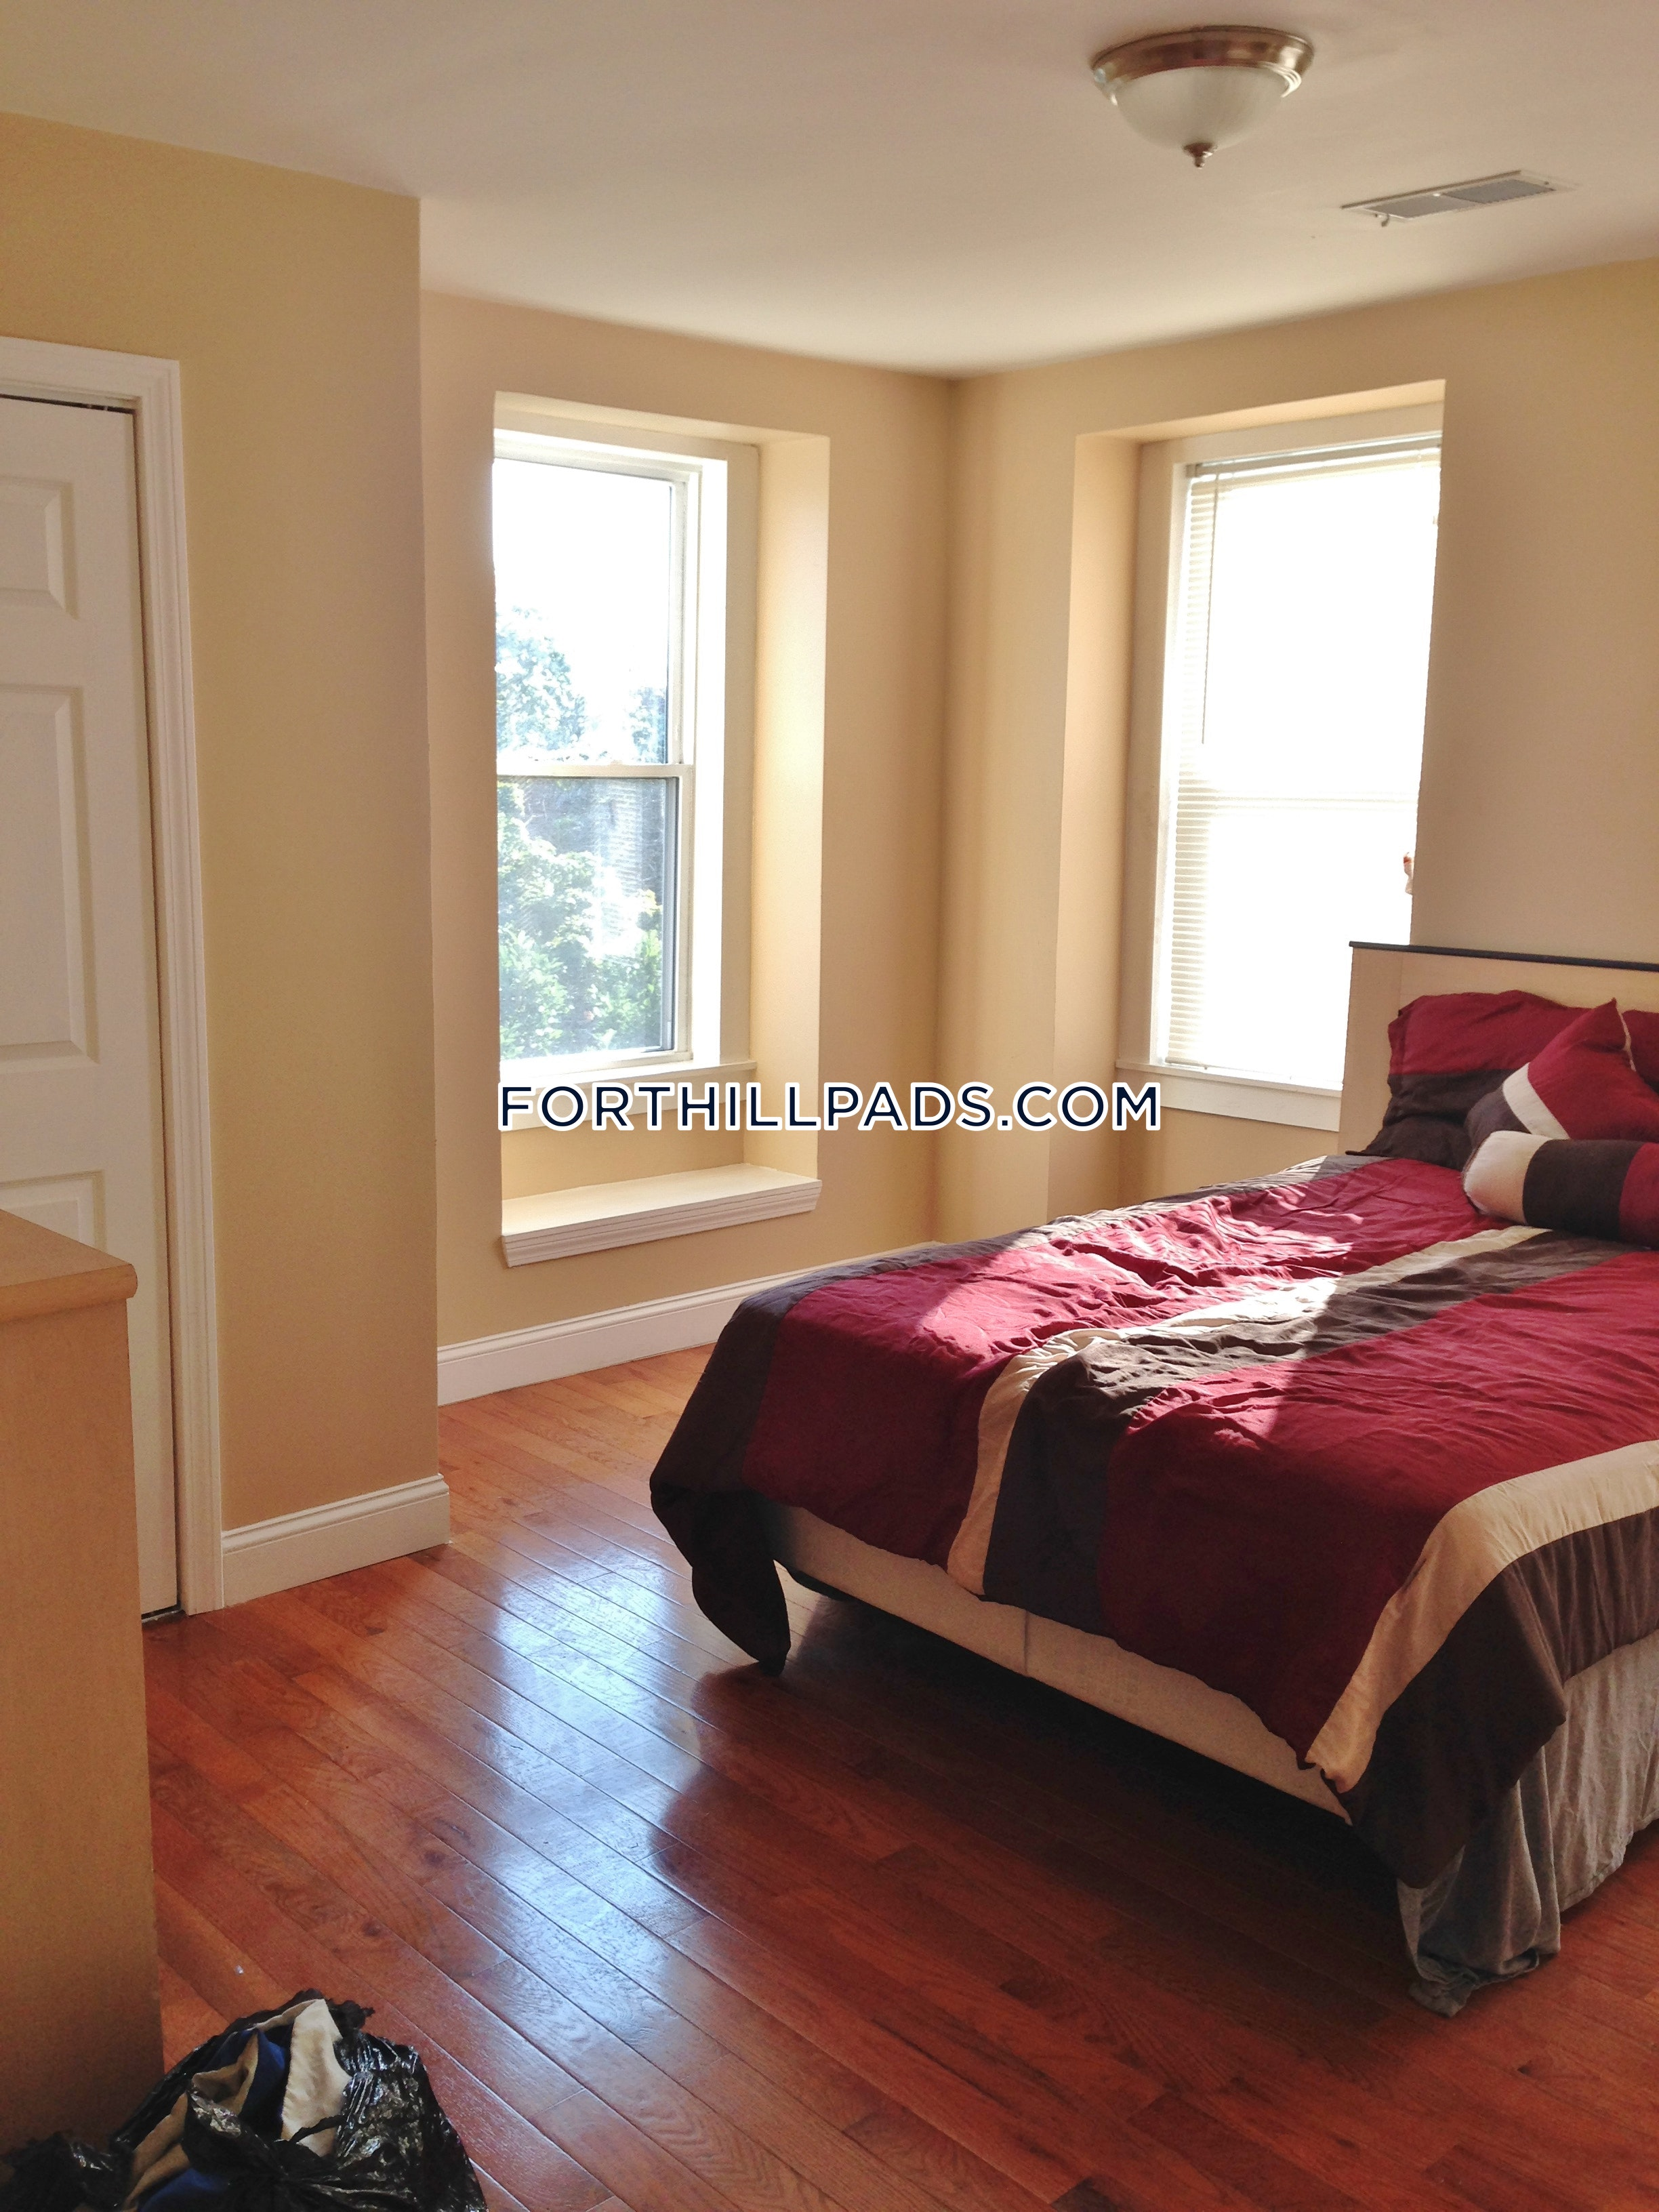 3 Beds 1 Bath - Boston - Fort Hill $2,400